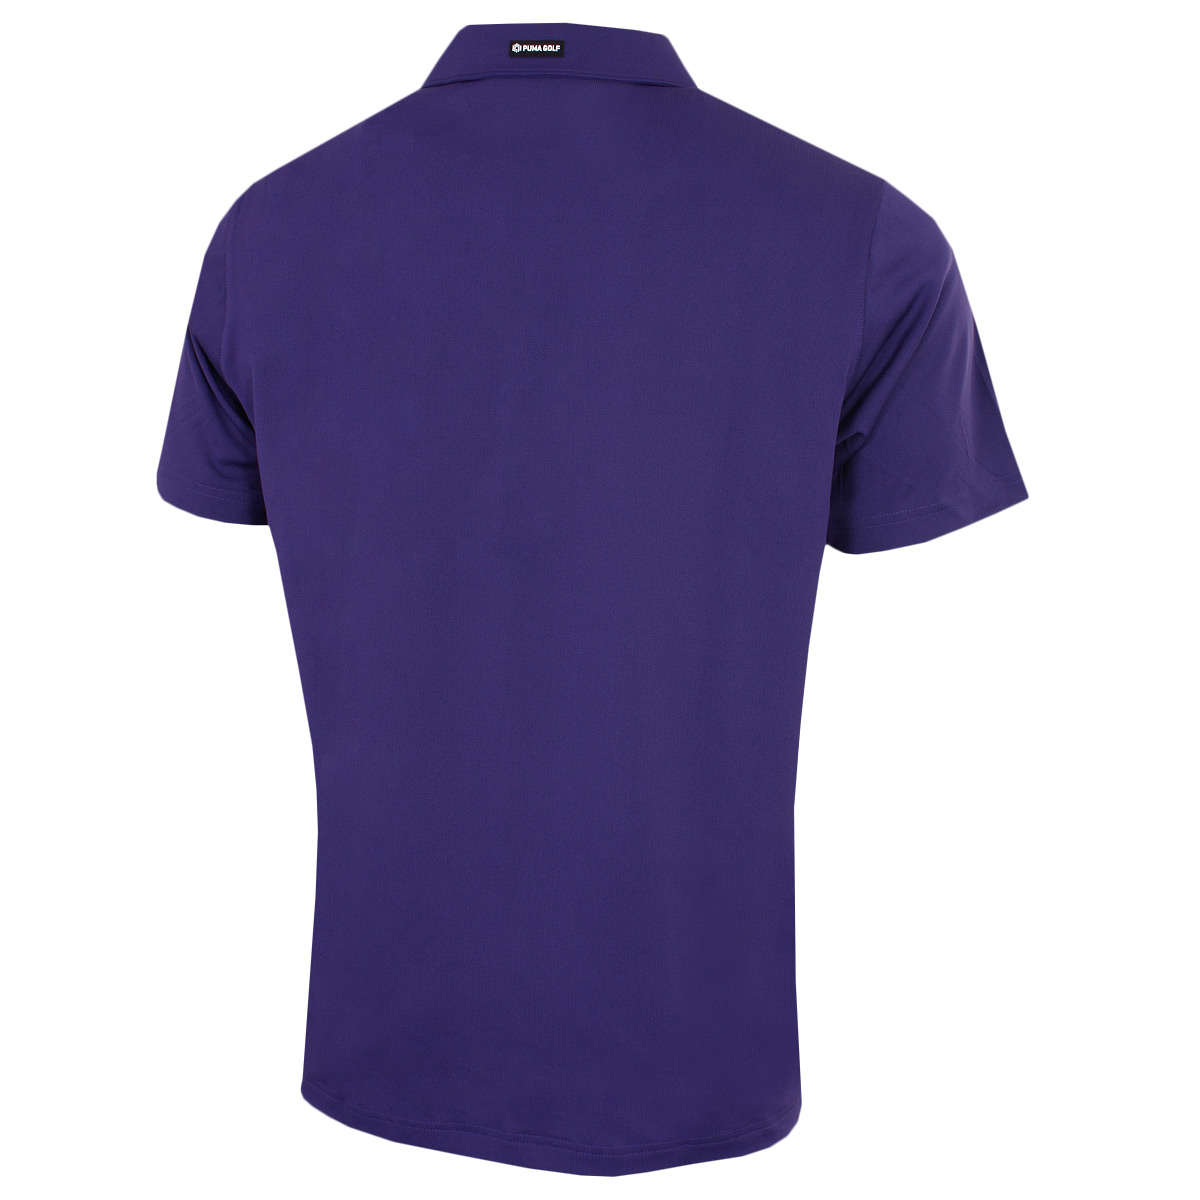 Puma-Golf-Mens-Essential-Pounce-Polo-Shirt-DryCell-Lightweight-Tech-43-OFF-RRP thumbnail 39